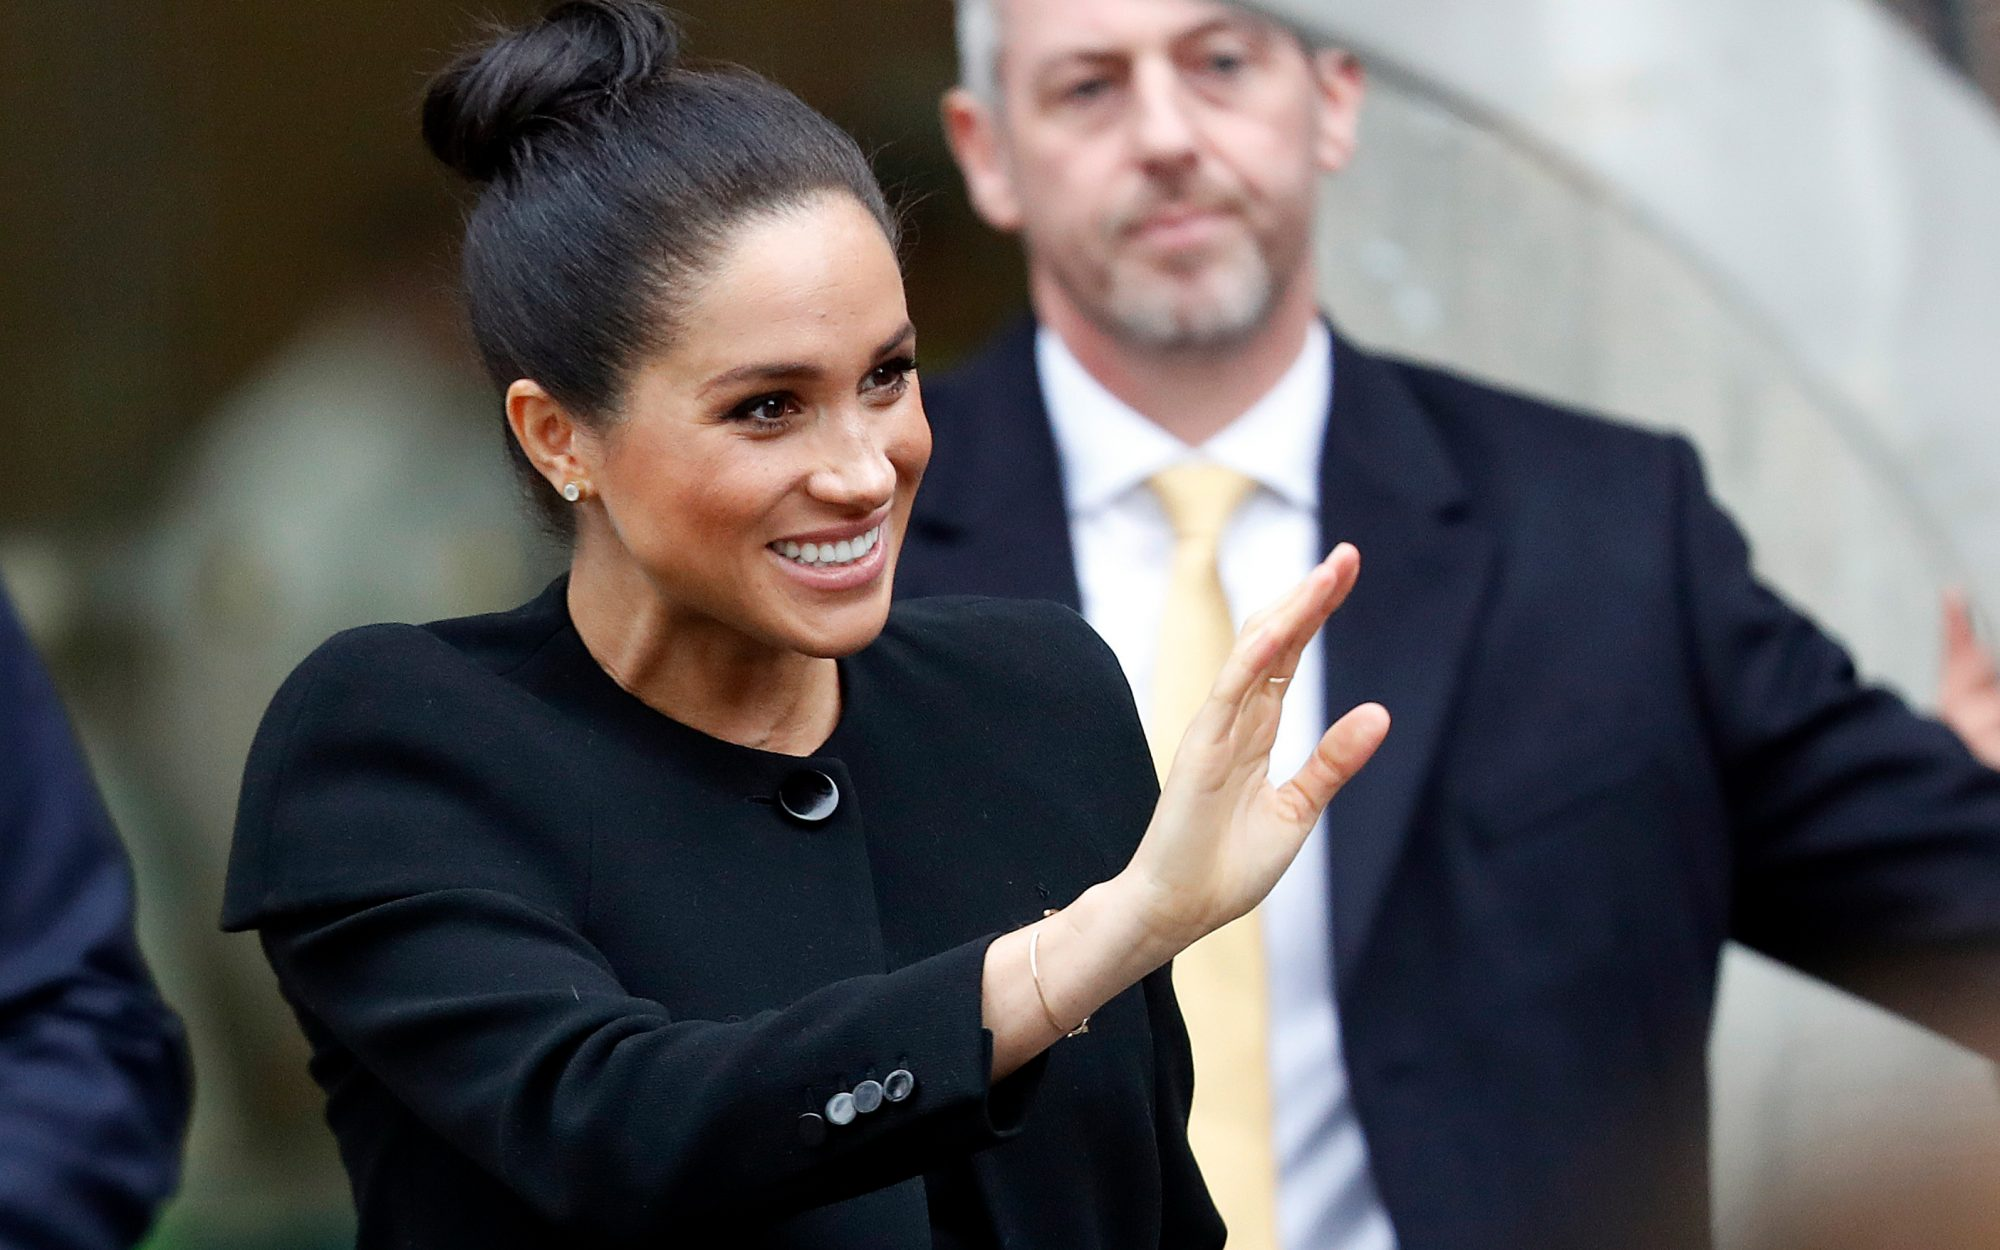 Meghan Markle Just Made a Surprise Trip to New York City